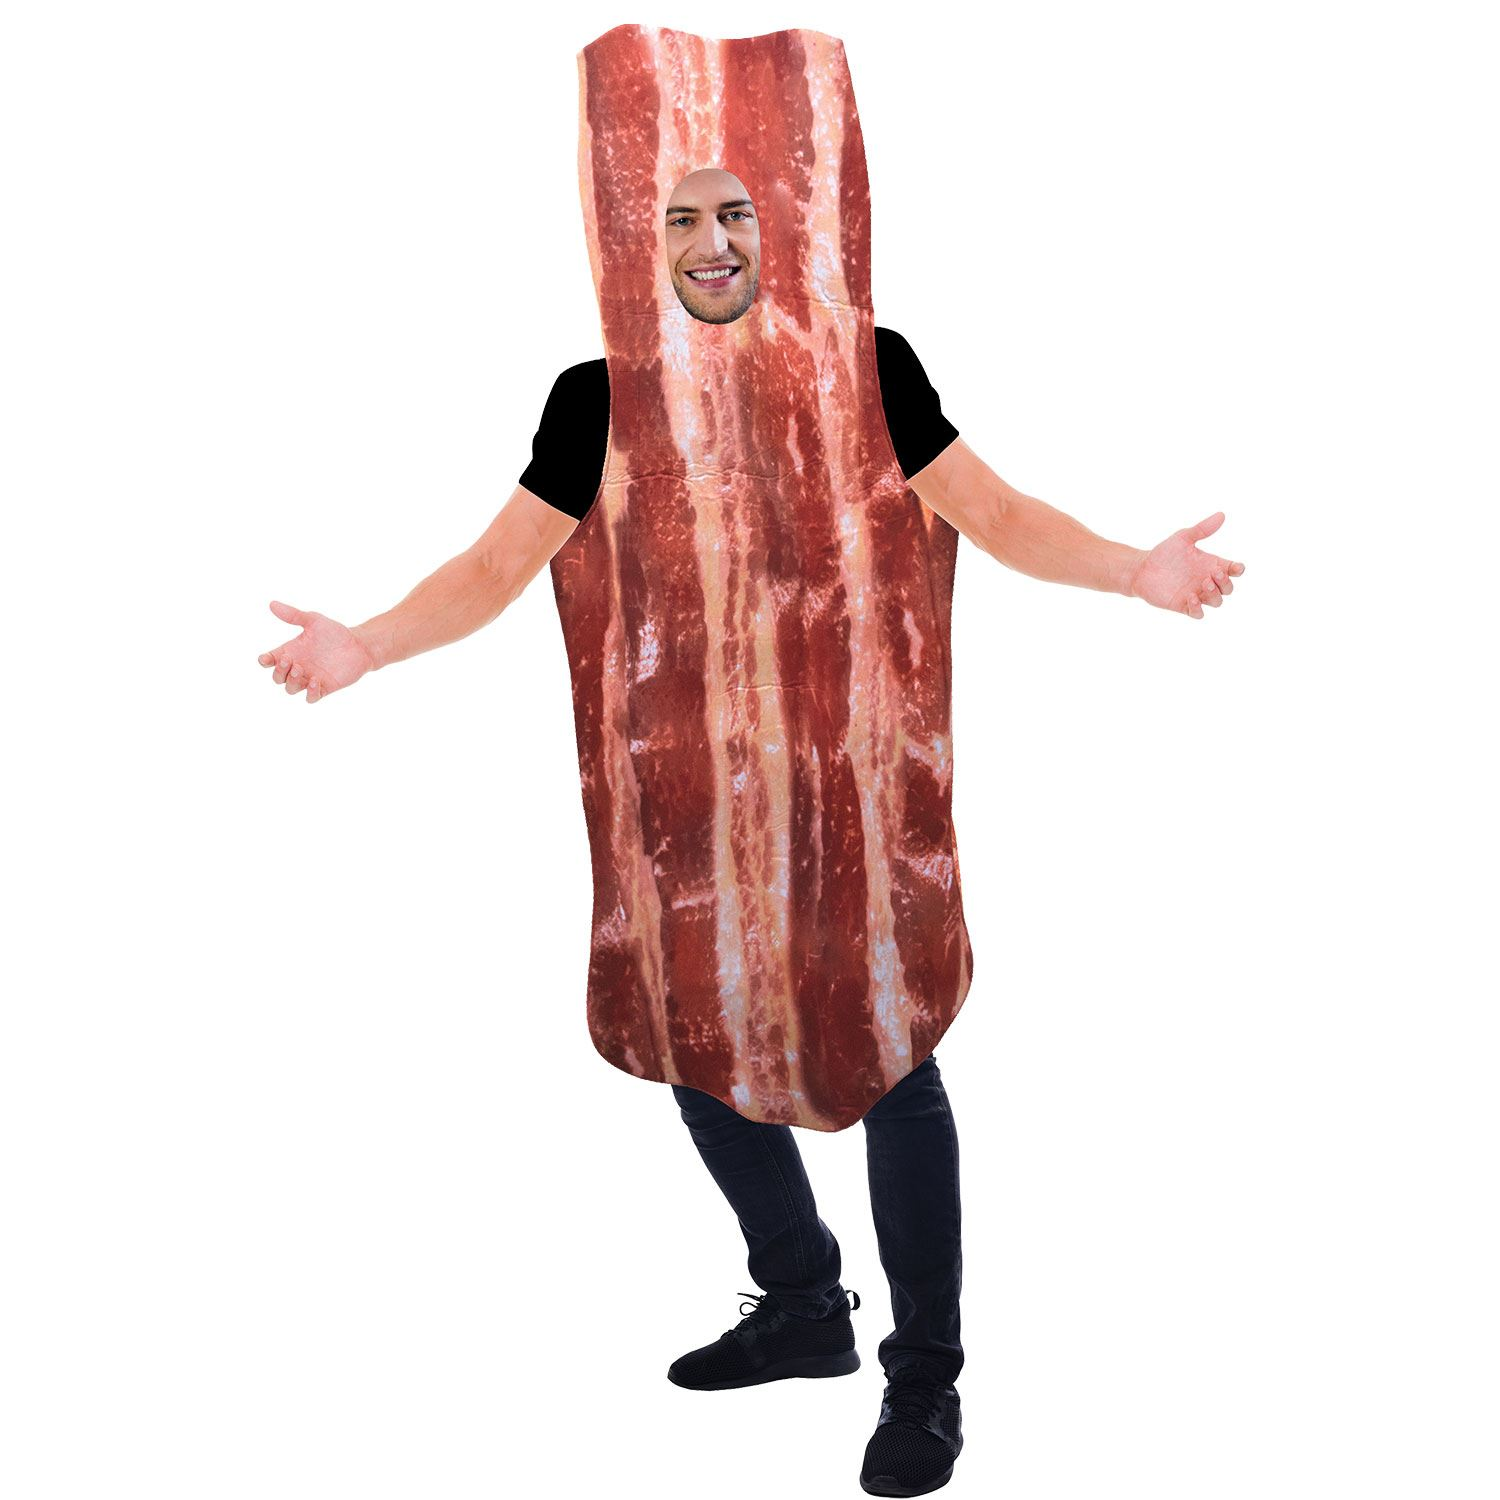 BACON SUIT ADULT COMICAL HALLOWEEN COSTUME MEN/'S SIZE STANDARD